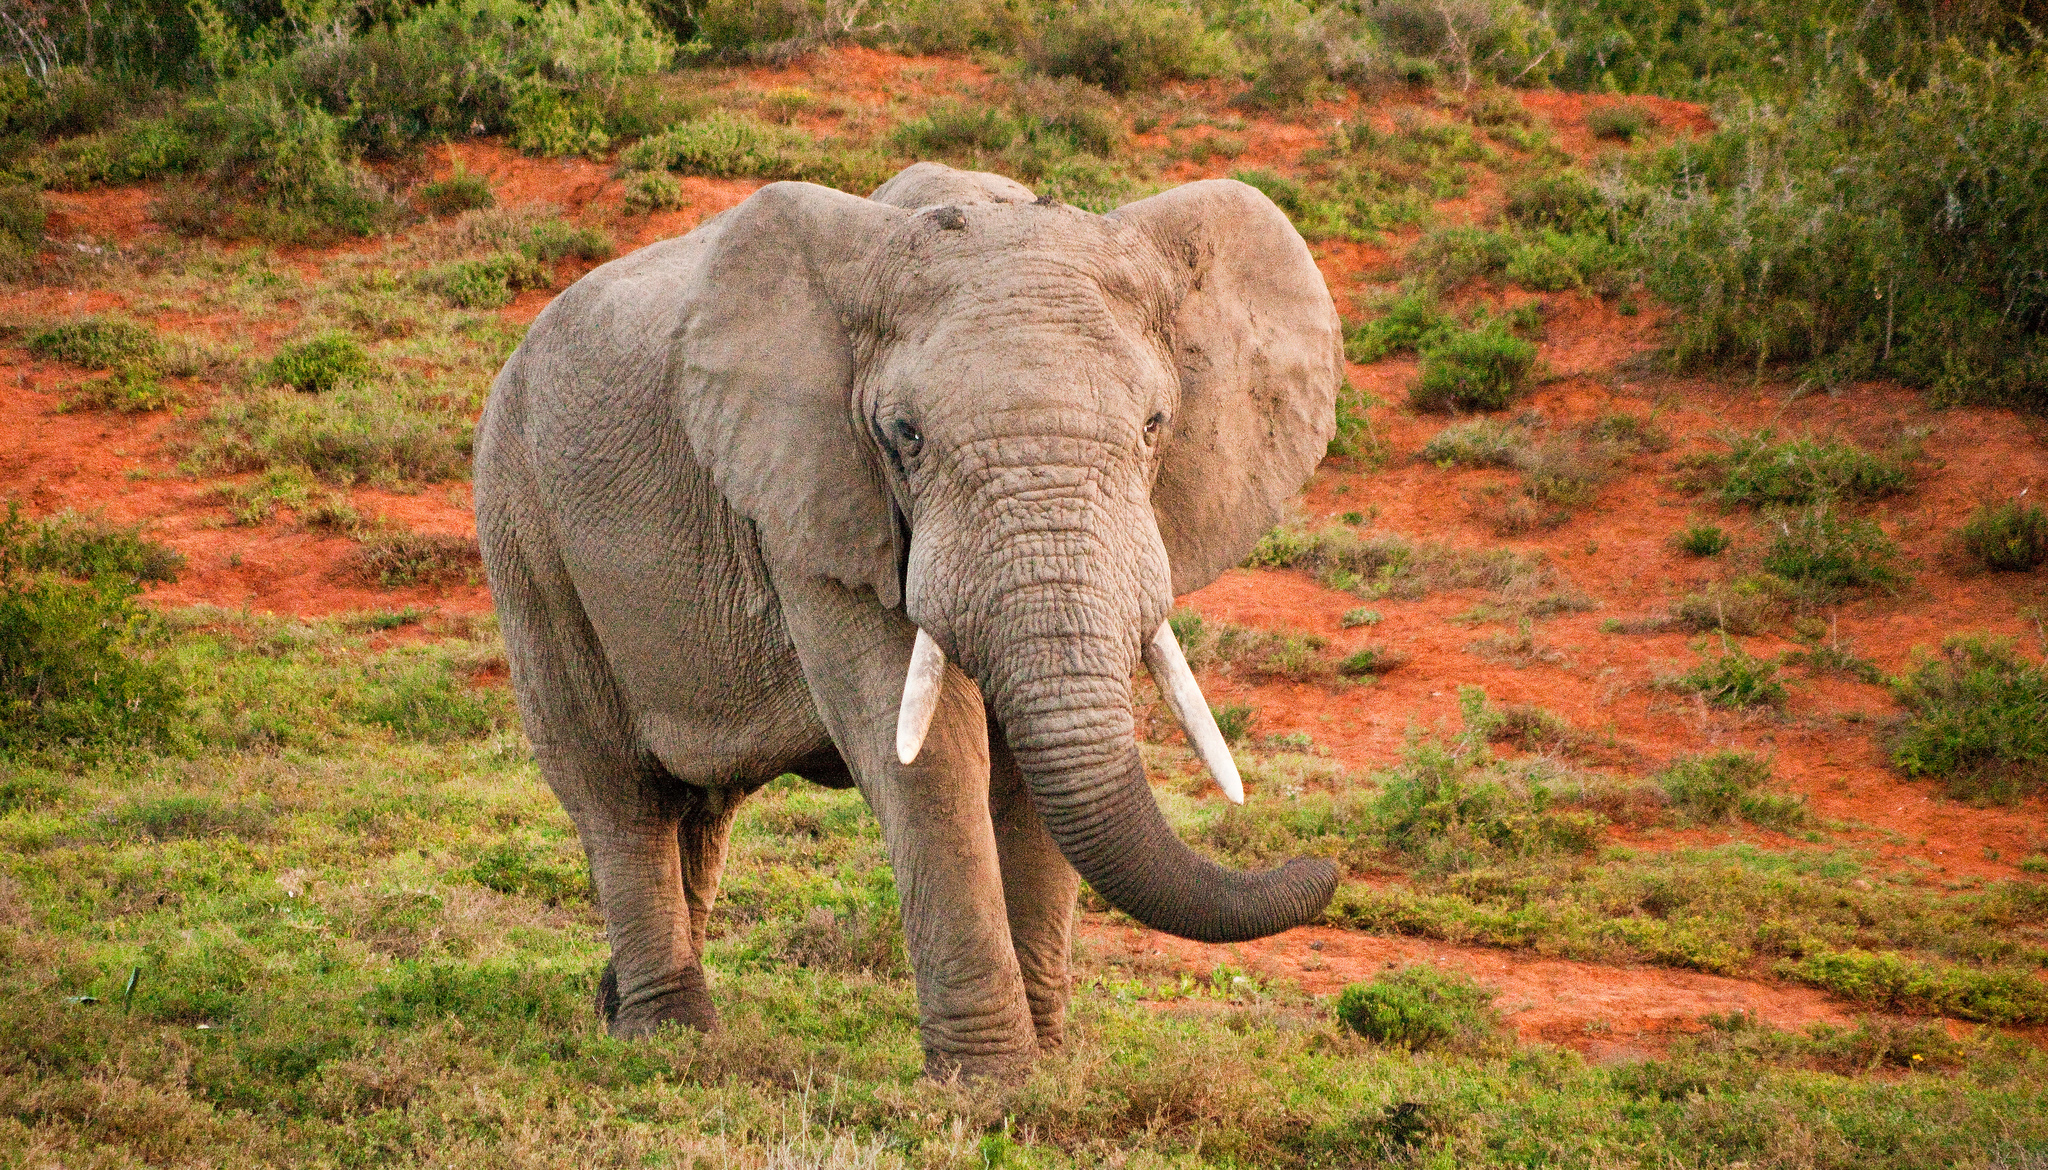 Elephant at the Amakhala Game Reserve. Photo credit: John Hickey-Fry.